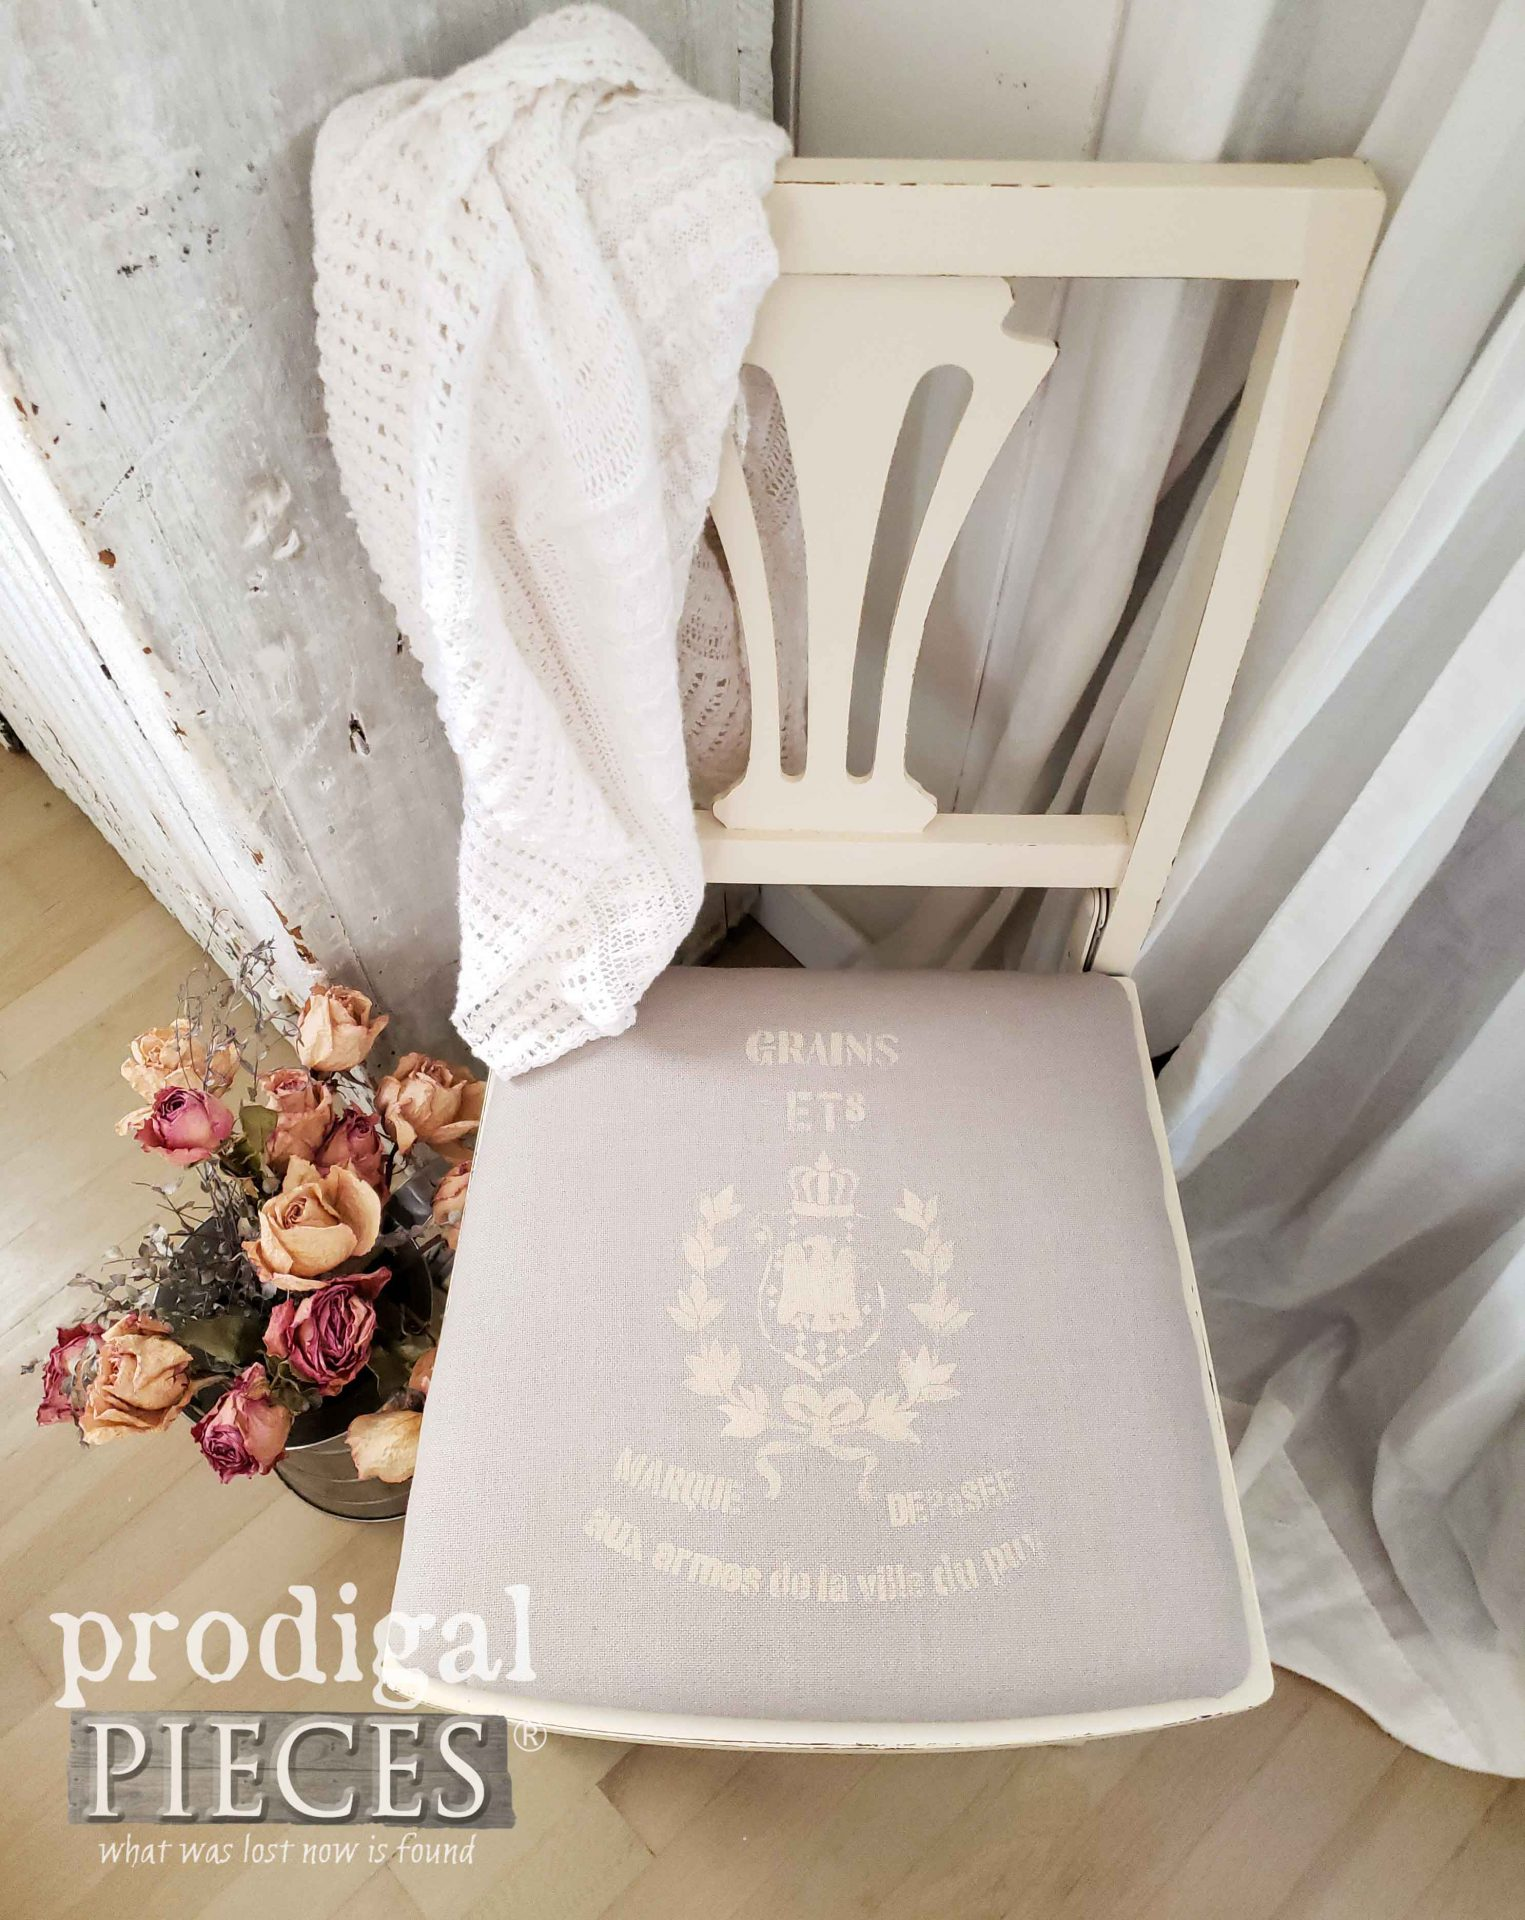 French Grain Sack Chair with Farmhouse Style by Larissa of Prodigal Pieces | prodigalpieces.com #prodigalpieces #diy #furniture #home #homedecor